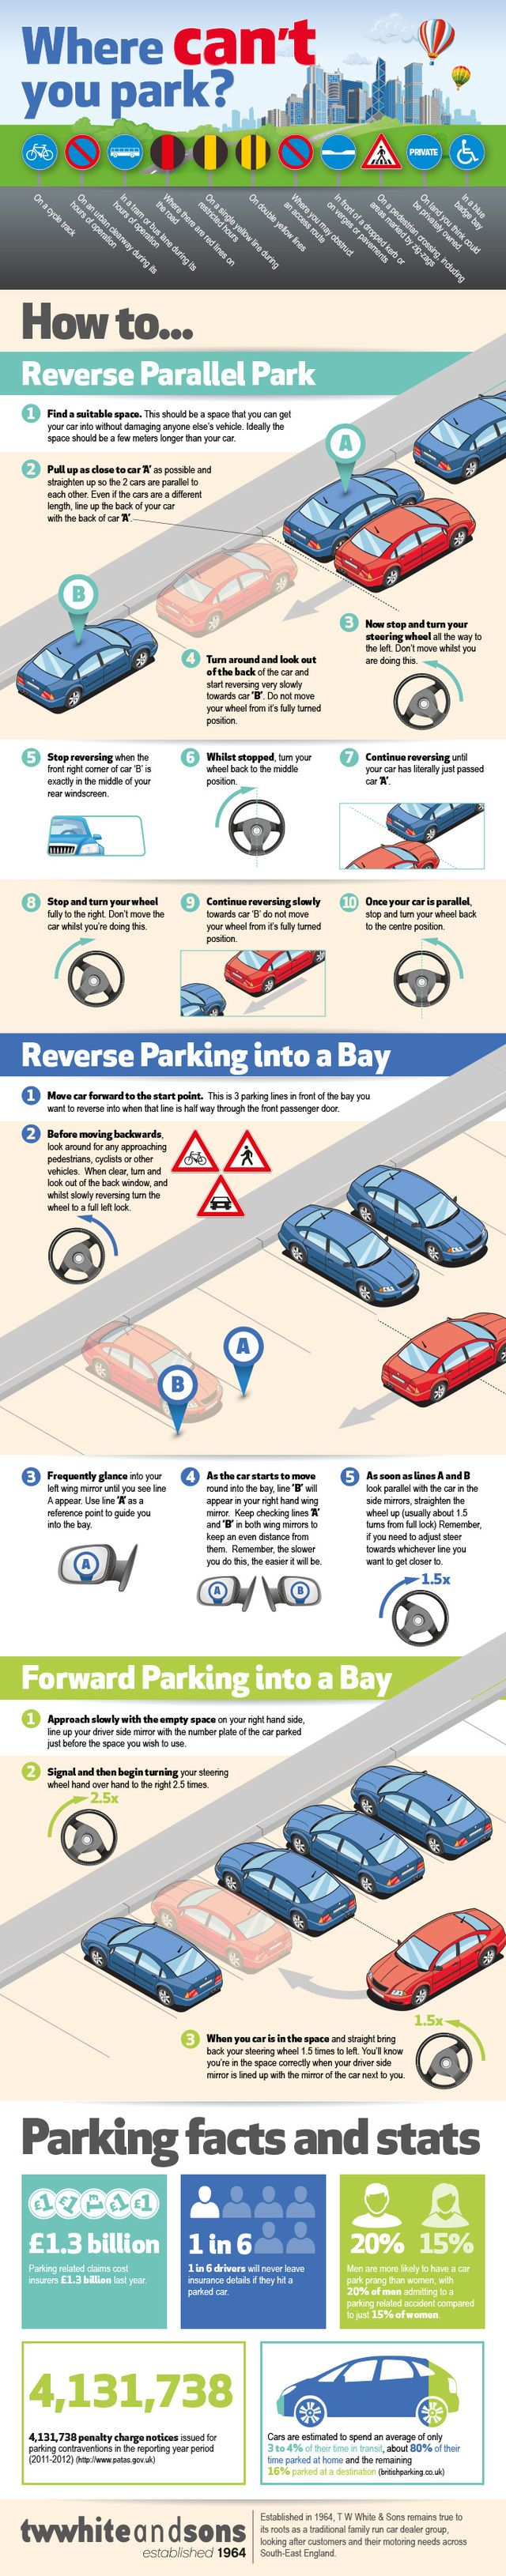 Provided by UK car dealer T W White & Sons, the graphic offers helpful tips for anyone who's ever struggled with parking. When parallel parking, for example, stop moving backwards when you see the right corner of the car behind you in the middle of your rear view mirror. Reverse parking into a bay isn't always taught in driver's ed, so it may be even trickier for many of us. The graphic shows how to use the parking lines as reference points to coolly and easily back in.